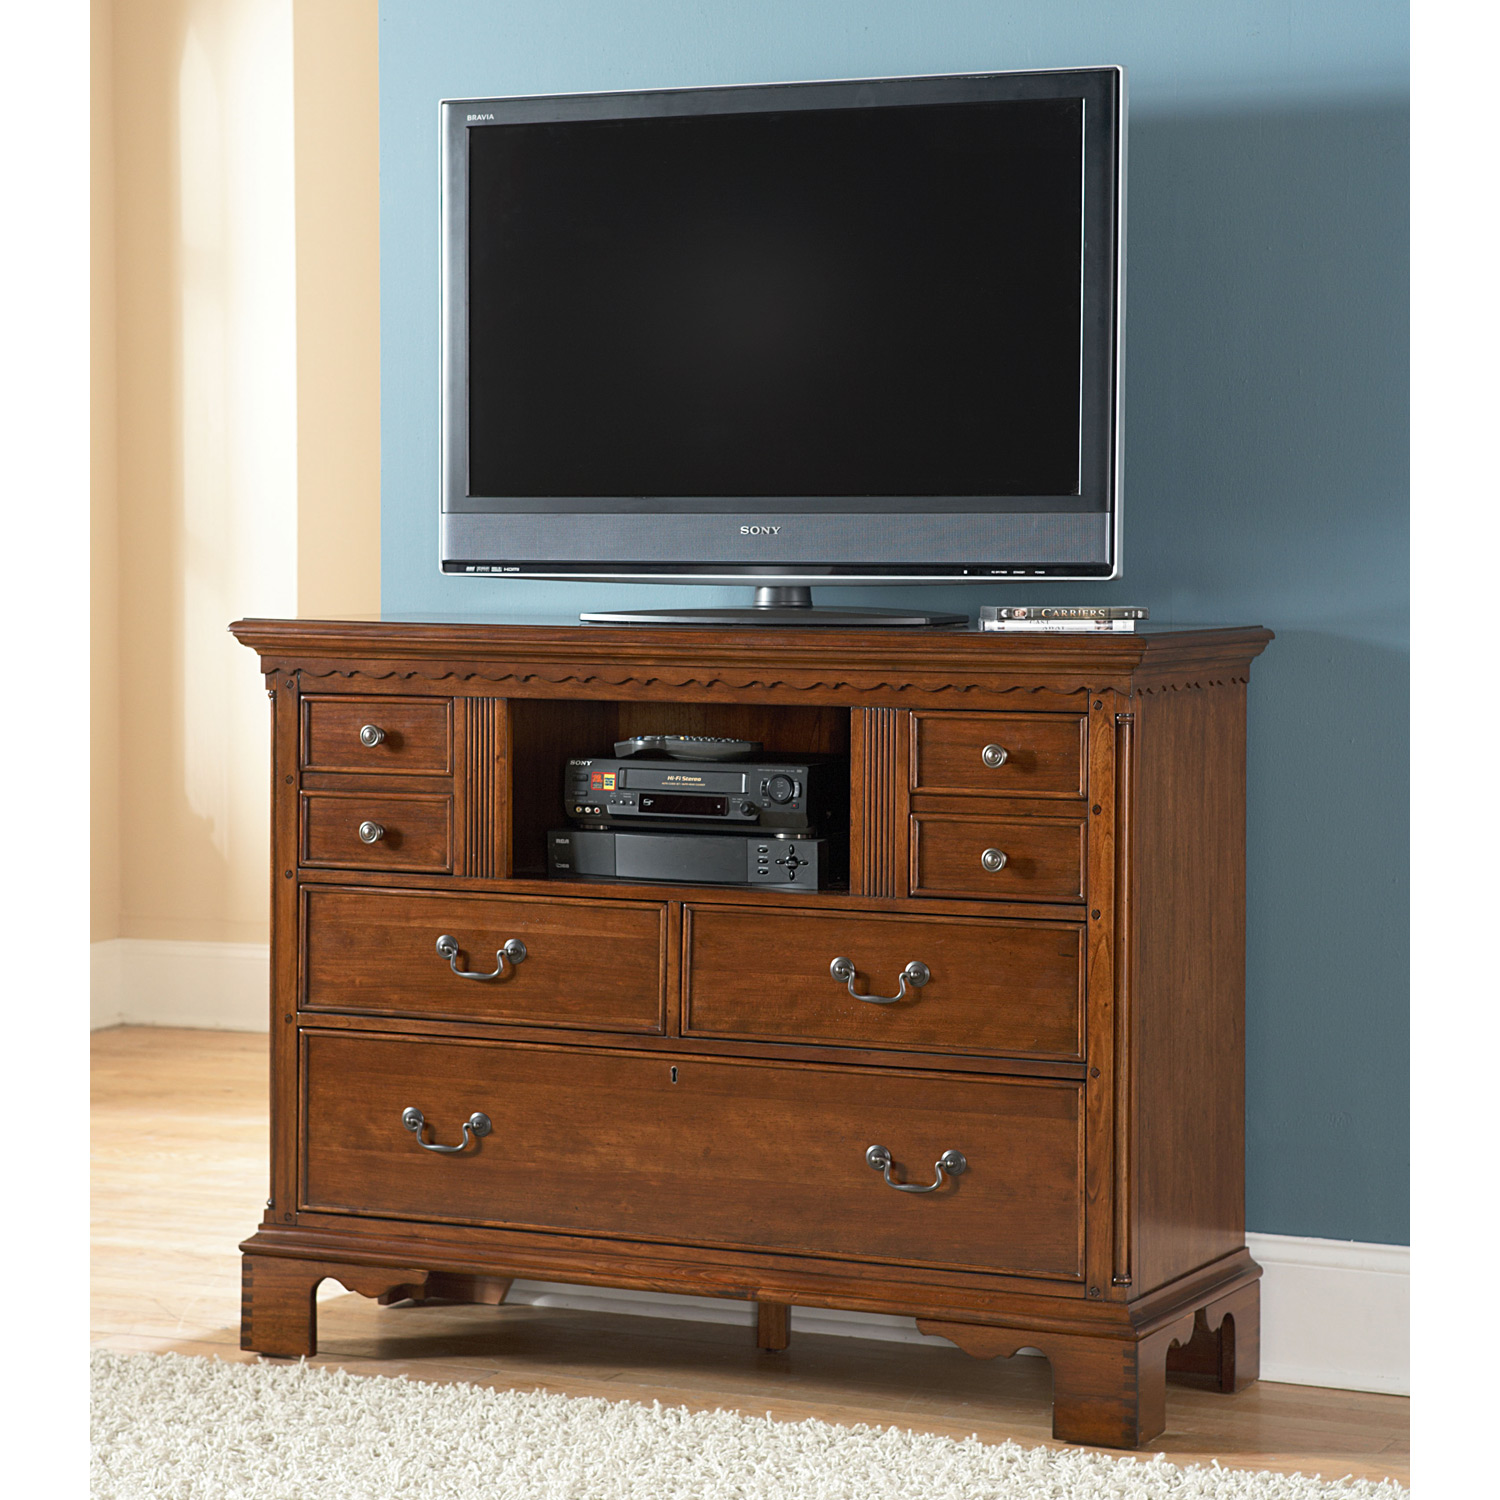 Nantucket Media Chest - Honey Brown, Antique Pewter Pulls - AW-1900-232